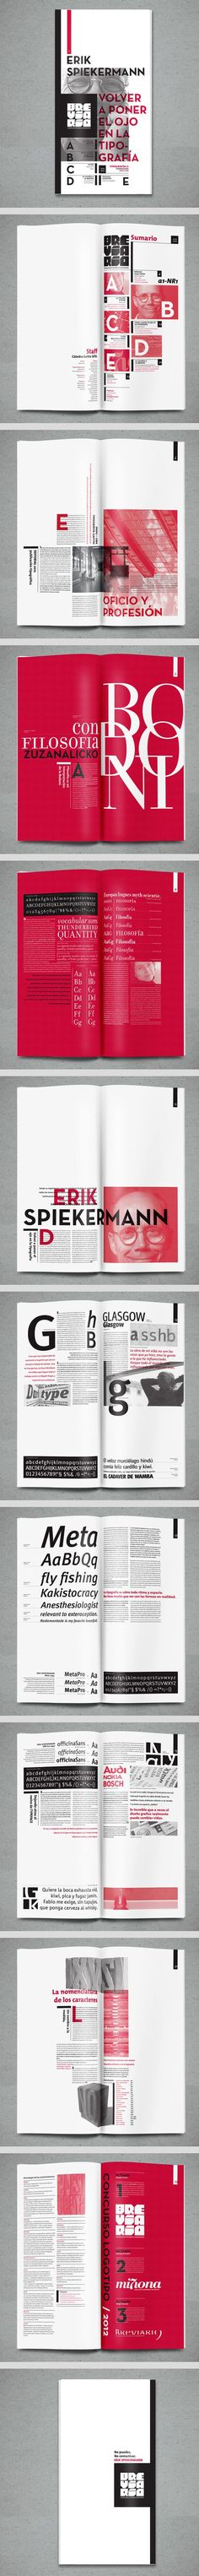 Brevario by Daniel Varela | print (book, magazine, newspaper) + typography + editorial + layout + design |: